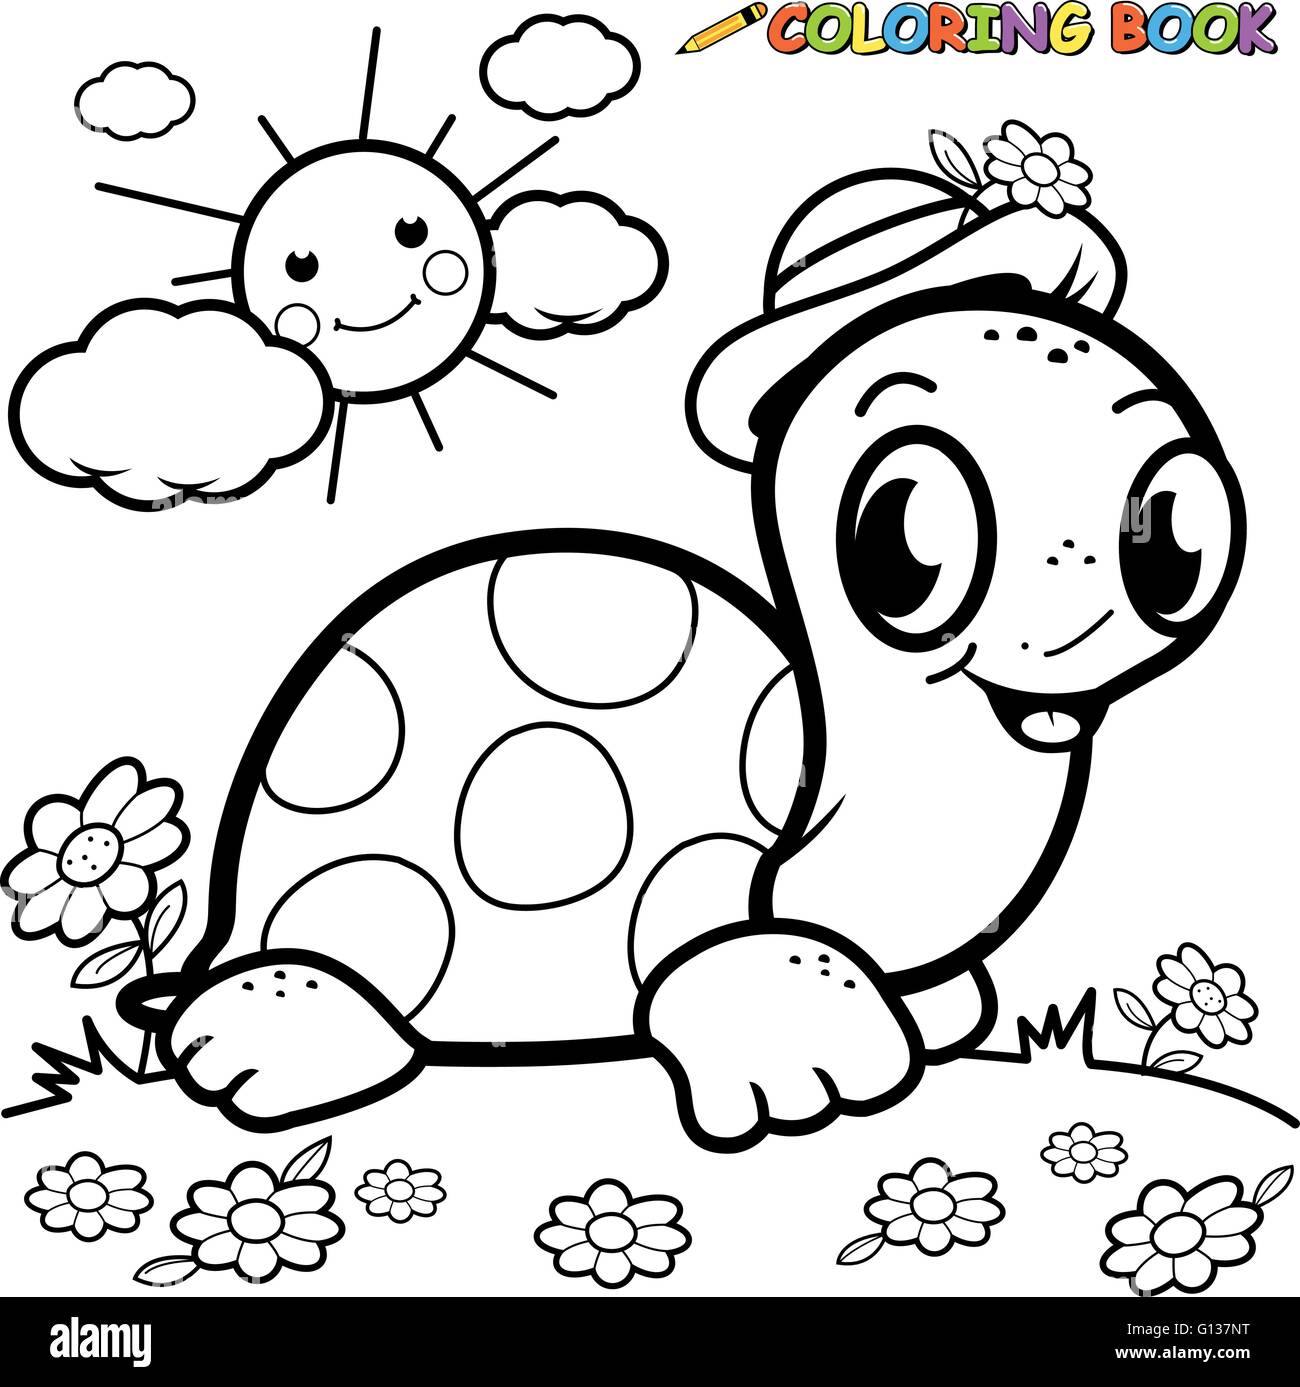 Black And White Outline Image Of A Turtle In The Grass Coloring